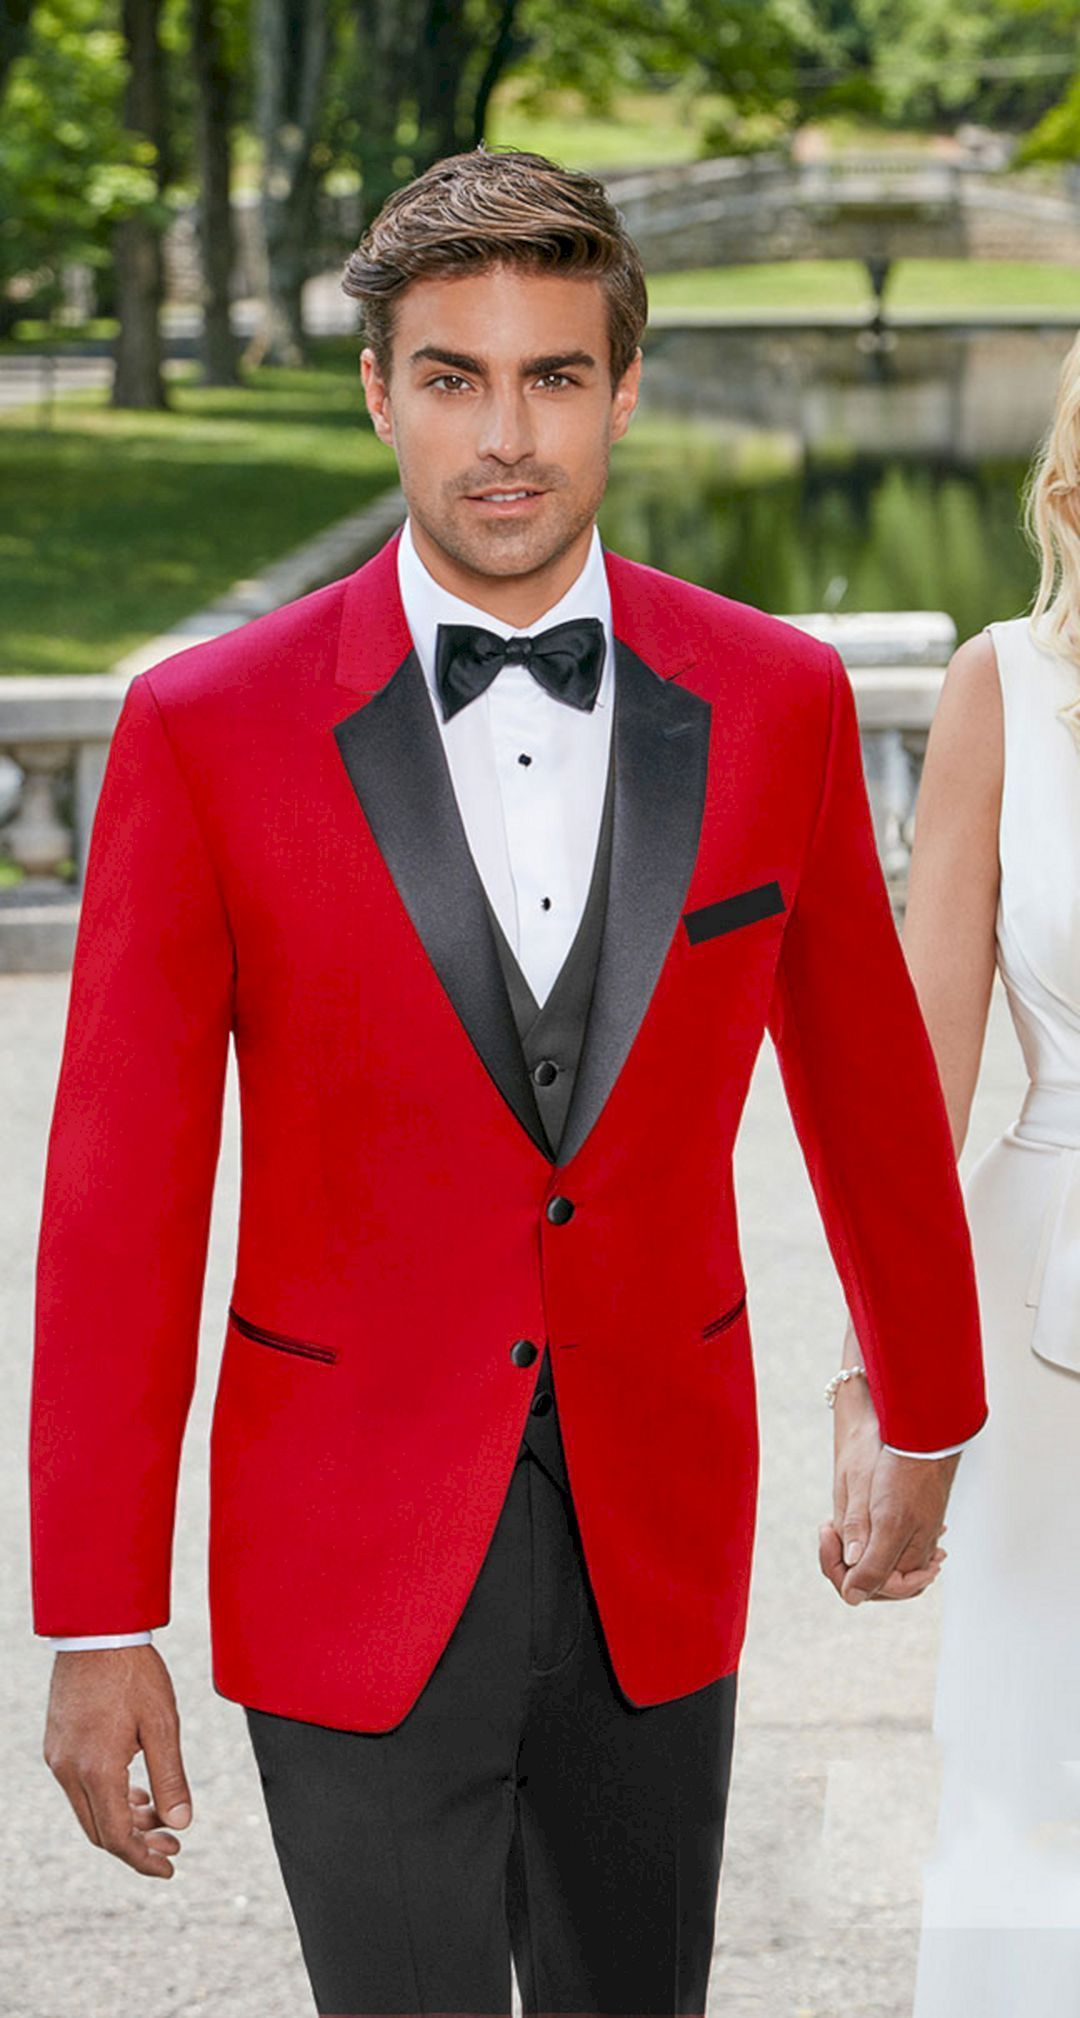 Red Black And White Wedding Tuxedo 116 Red Tuxedo Best Wedding Suits Red Wedding Dresses